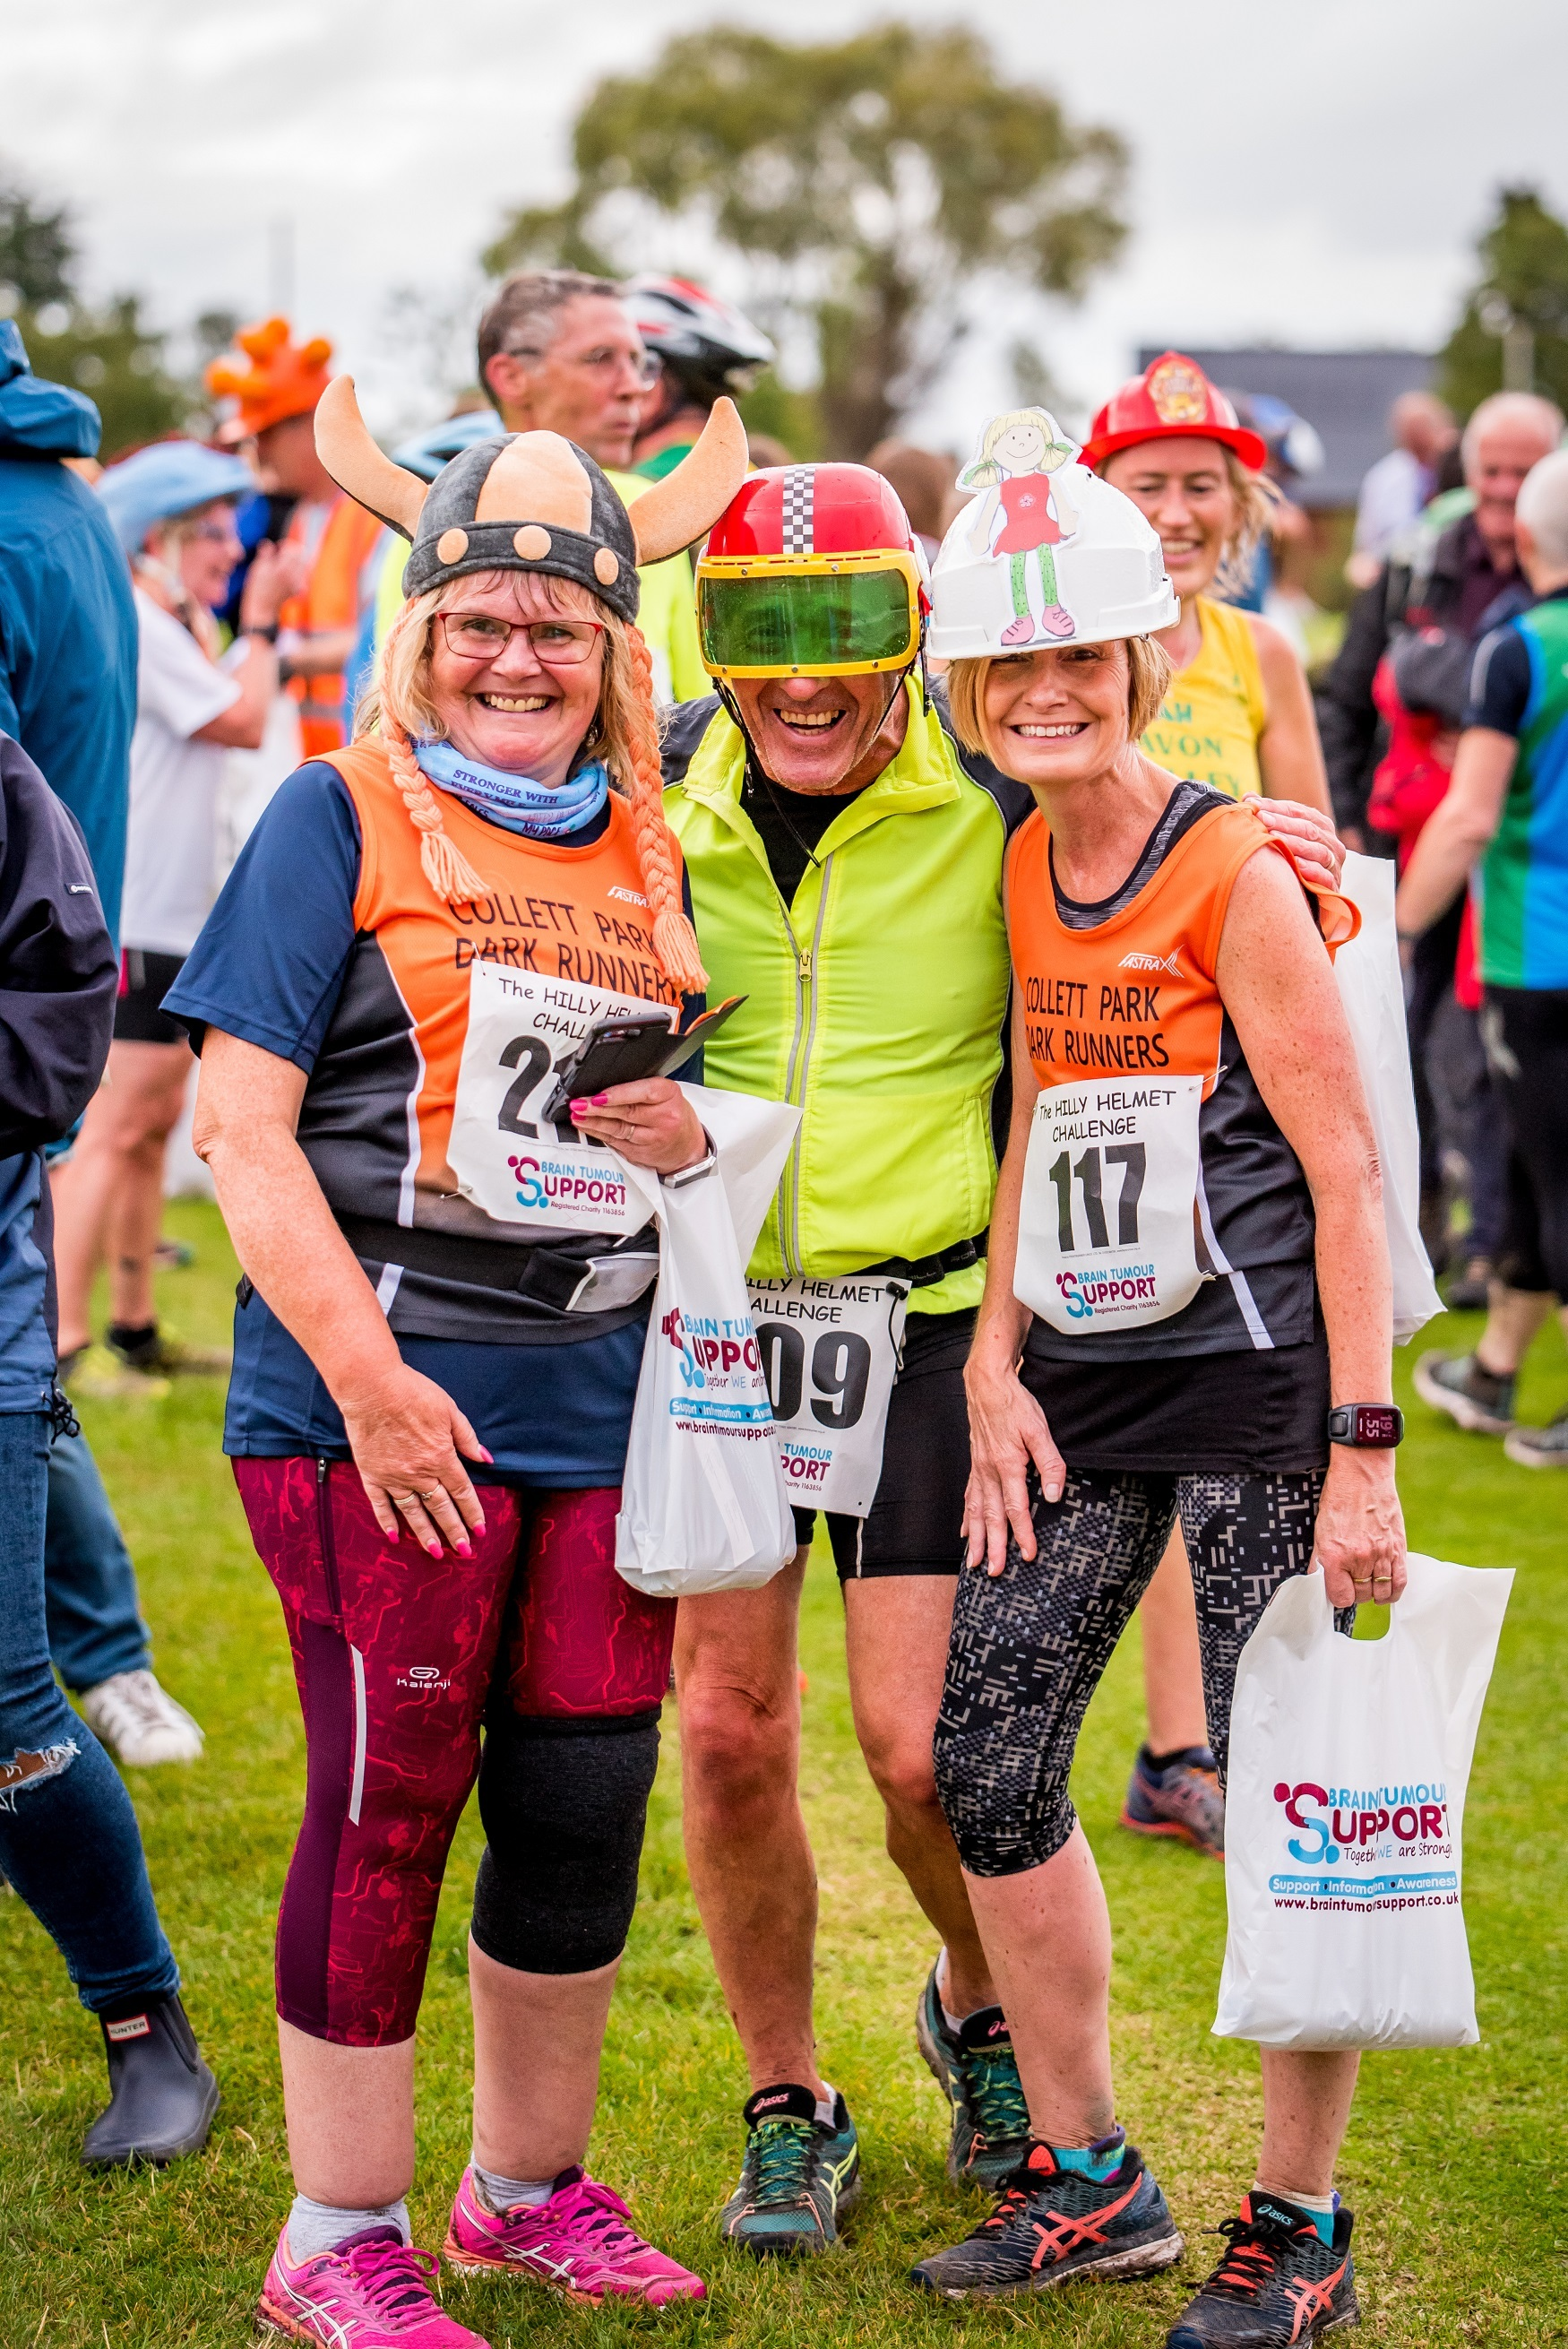 Runners took on the Hilly Helmet Challenge to raise more than £4,000 for the Brain Tumour Support charity